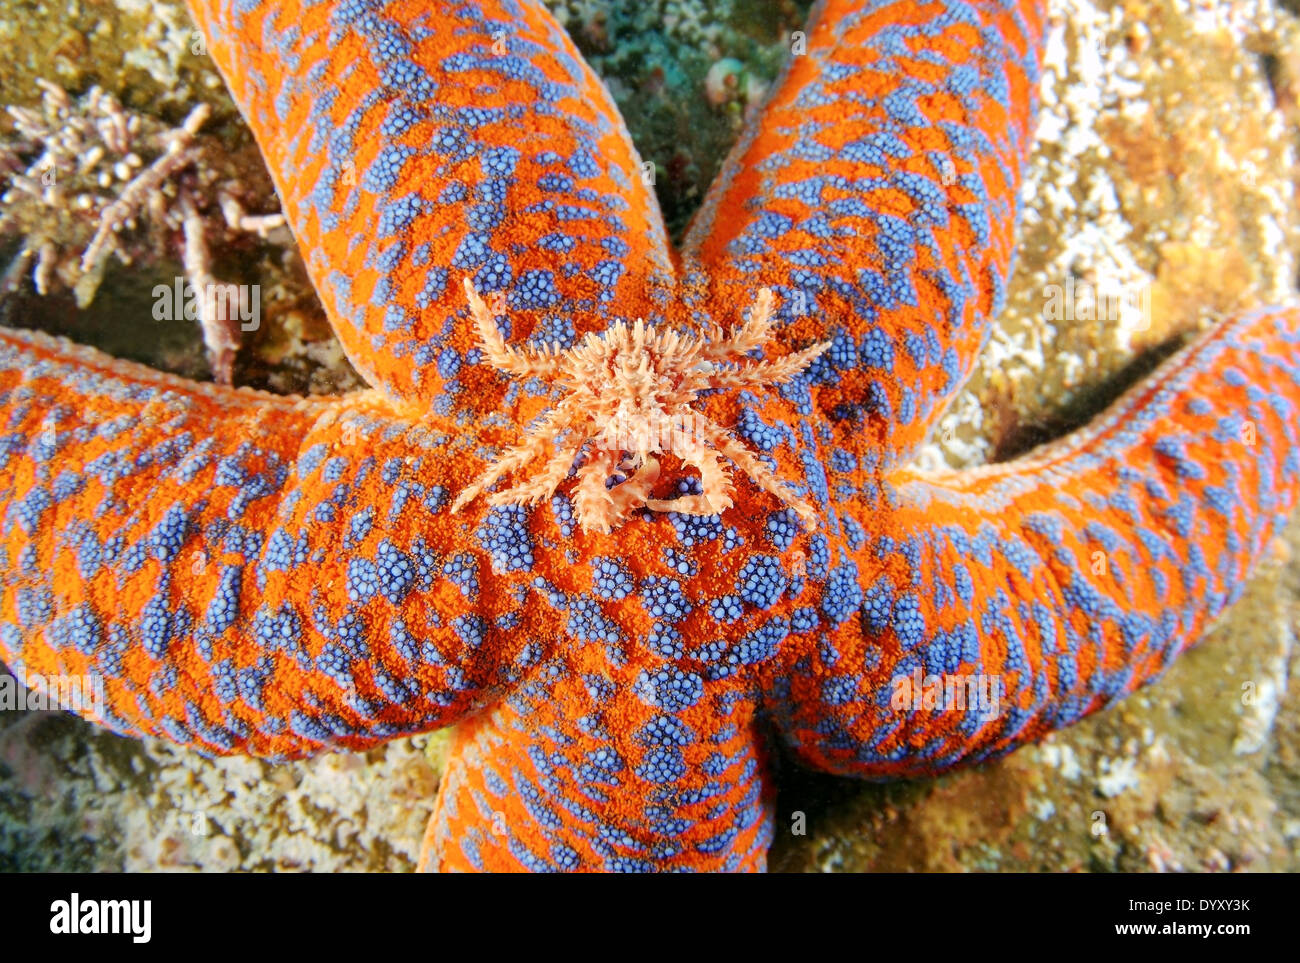 young Red King crab (Paralithodes camtschaticus) sits on a starfish (evasterias retifera) Japan sea, Far East, Primorsky Krai, Stock Photo